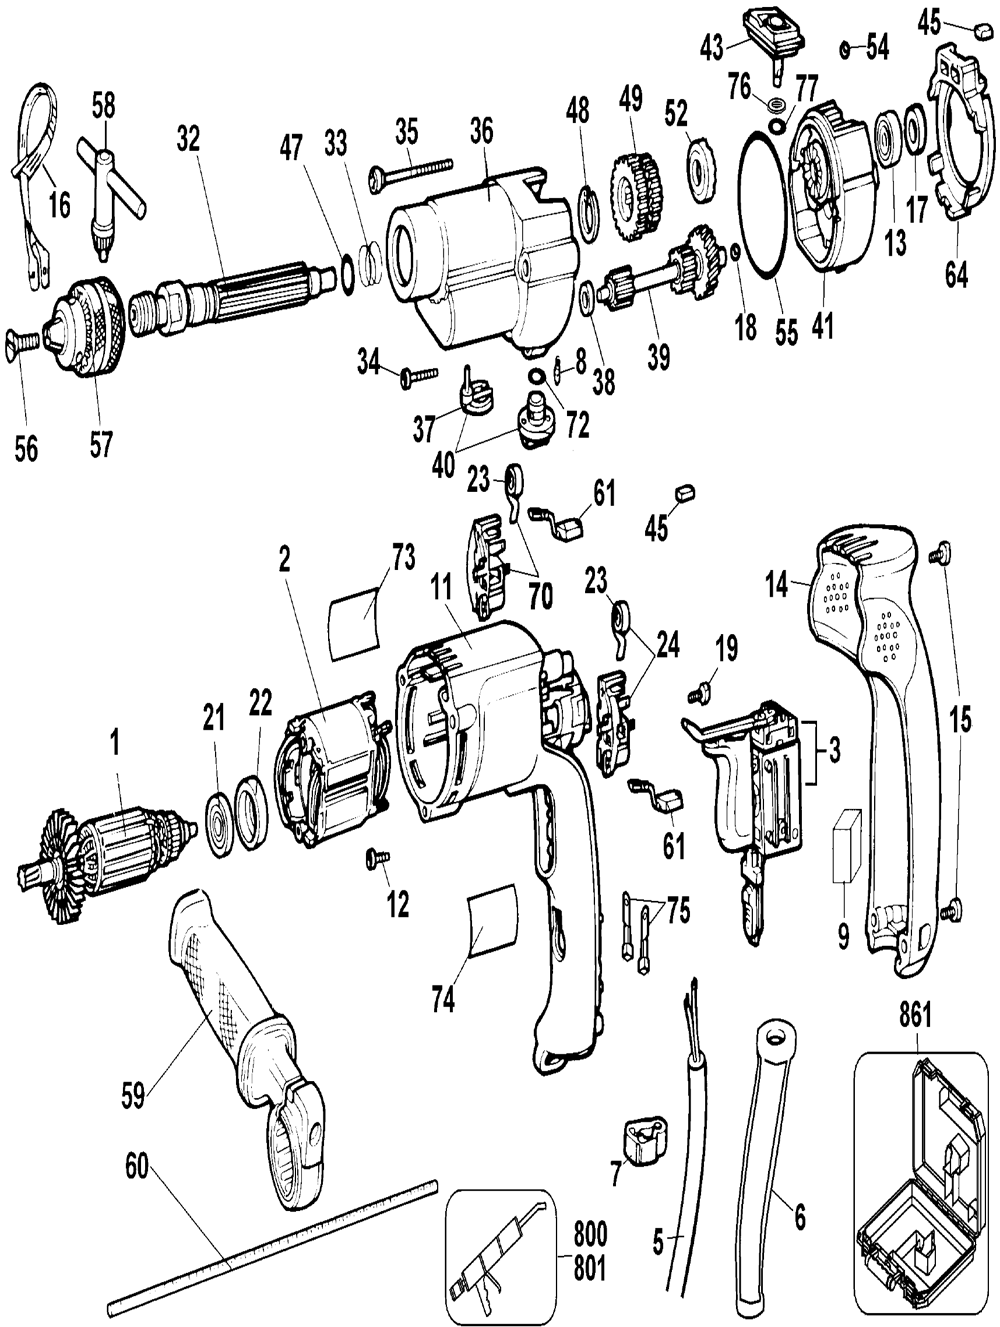 century pool pump wiring diagram with Brushless Dc Motor Animation on Alloy Usa 10661 as well Arcoaire Furnace Parts Diagram likewise Sears Electric Water Heater Wiring Diagram also Collectionsdwn Sewing Needle Clip Art moreover 2 Hp Marathon Electric Motors Wiring Diagrams.